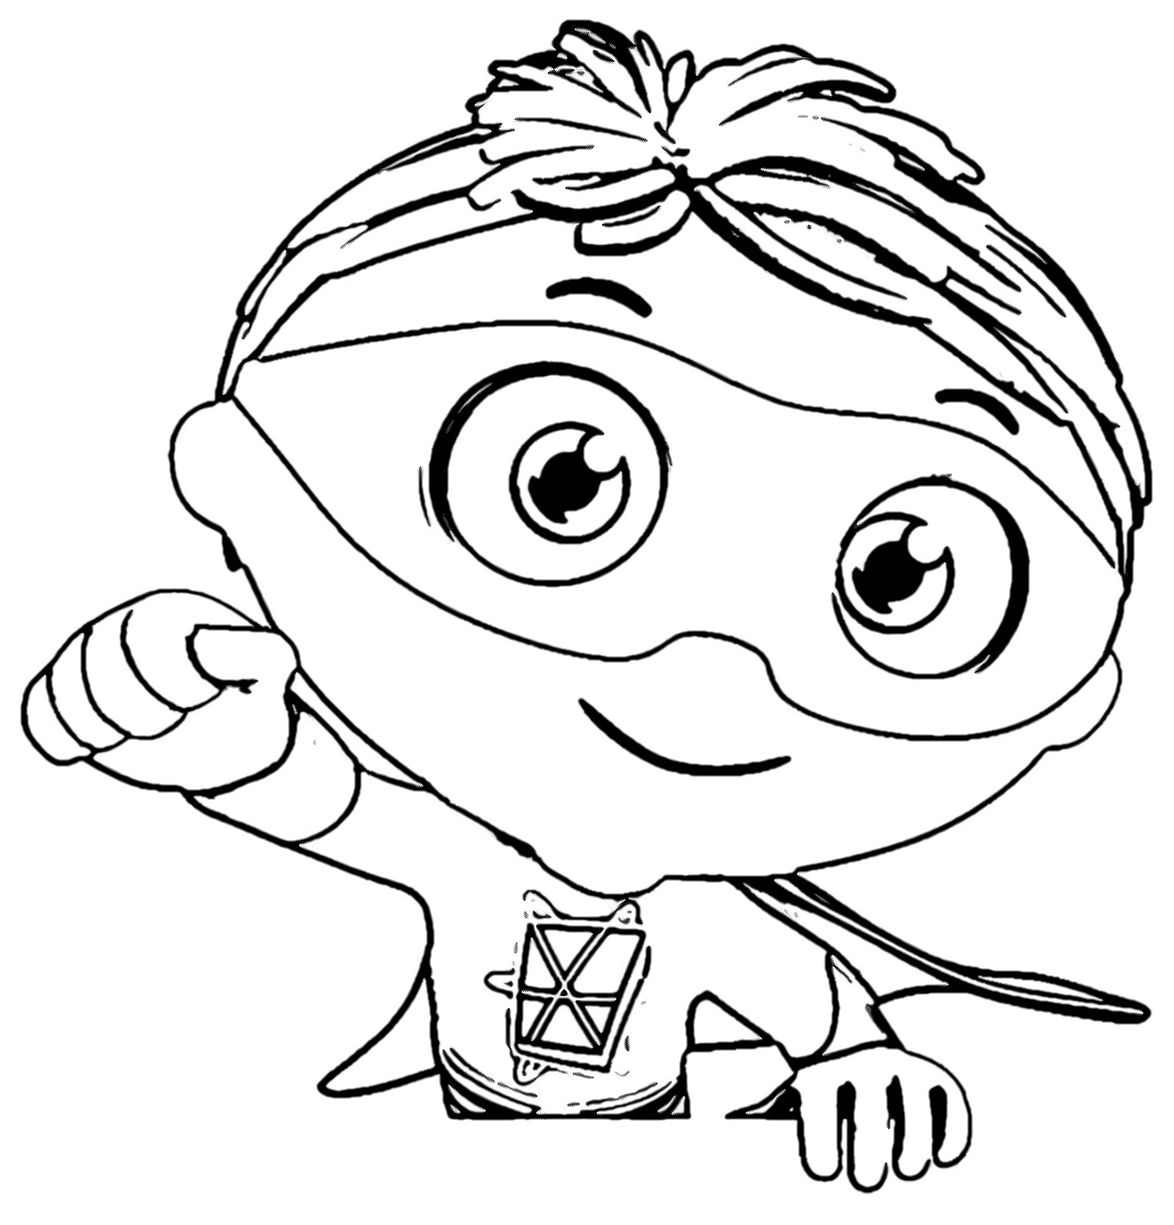 Super Why Coloring Pages - Best Coloring Pages For Kids  Super